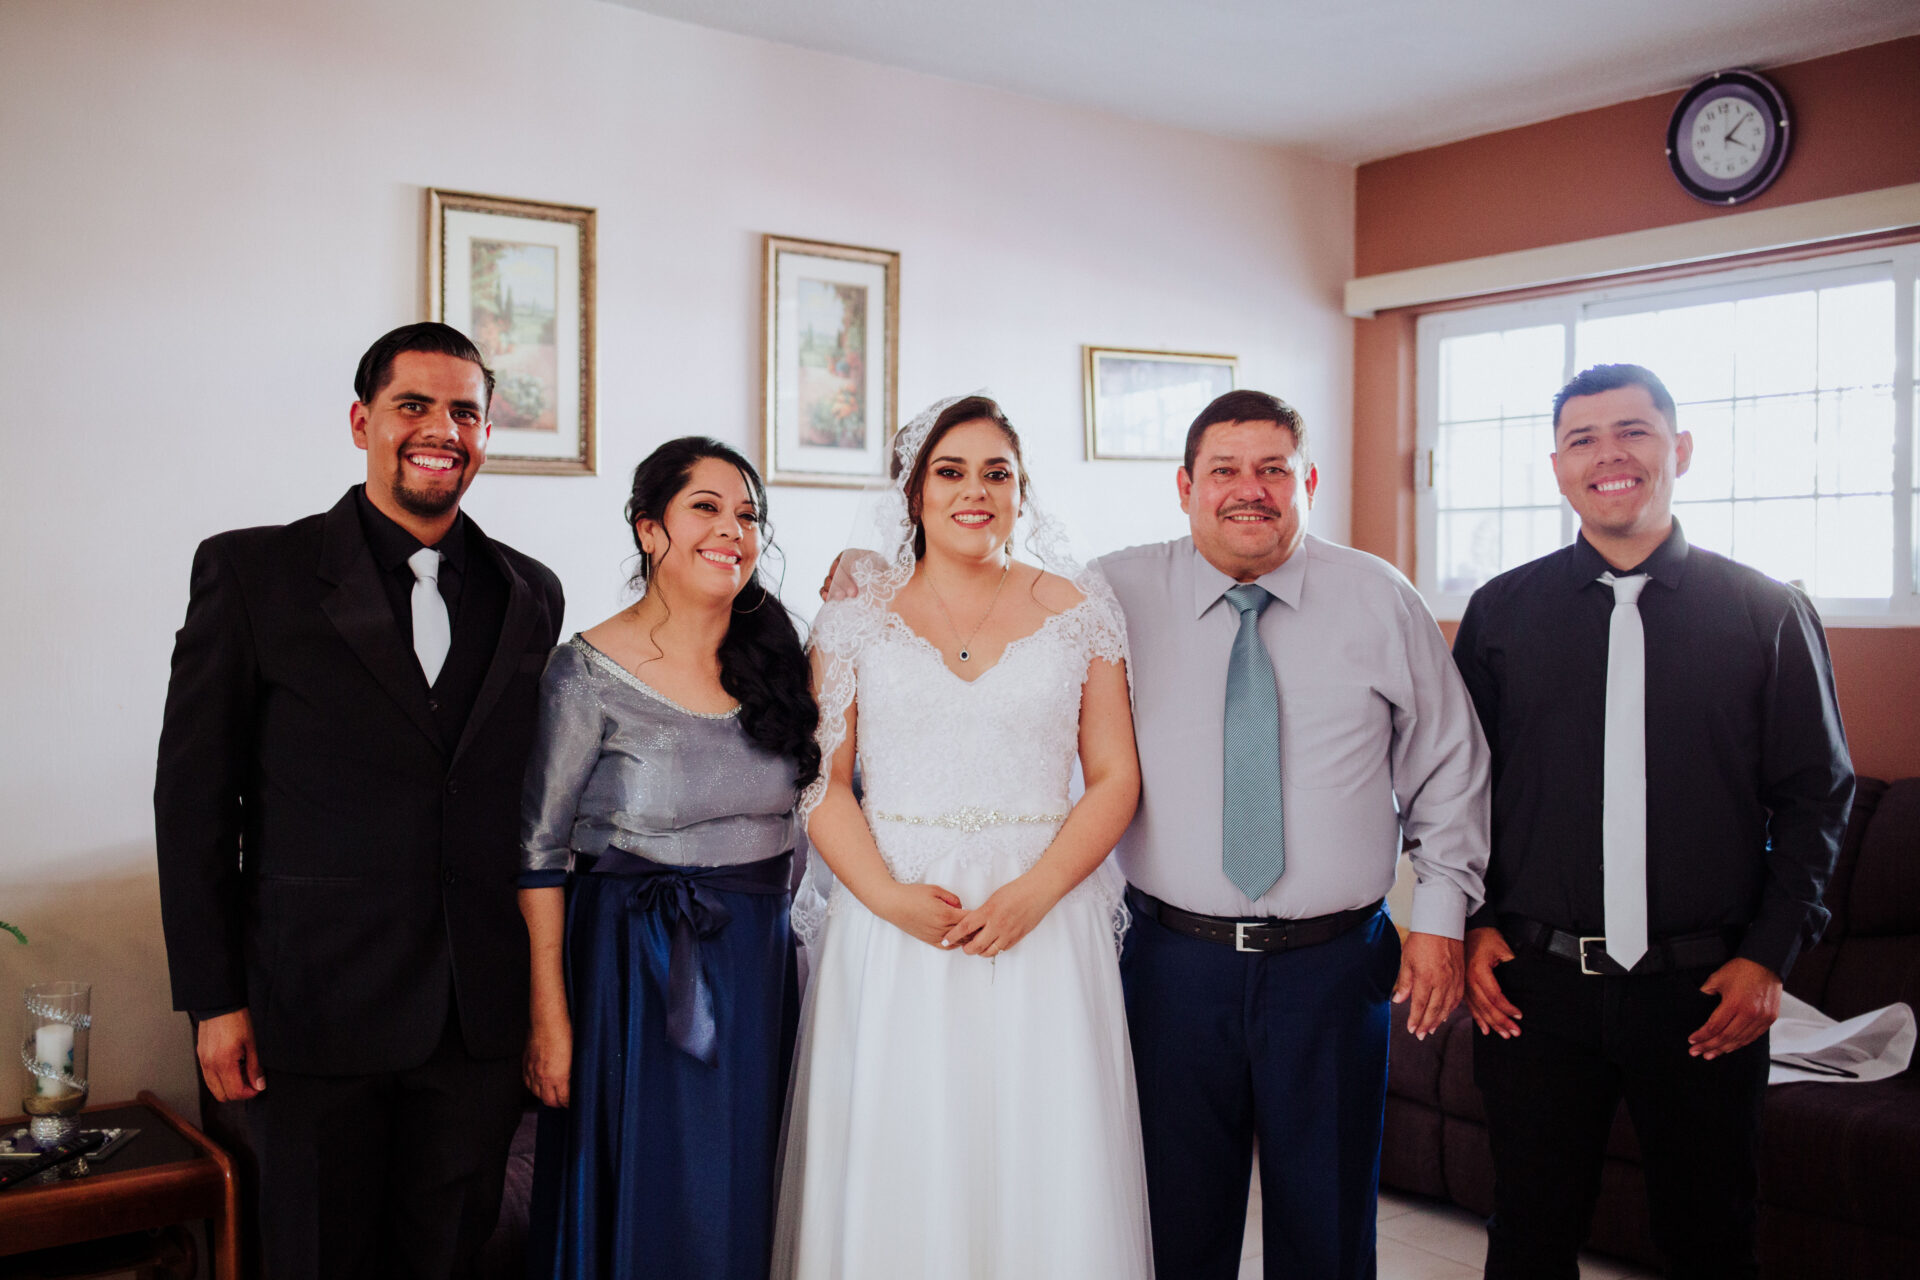 javier_noriega_fotografo_bodas_zacatecas_chihuahua_wedding_photographer14